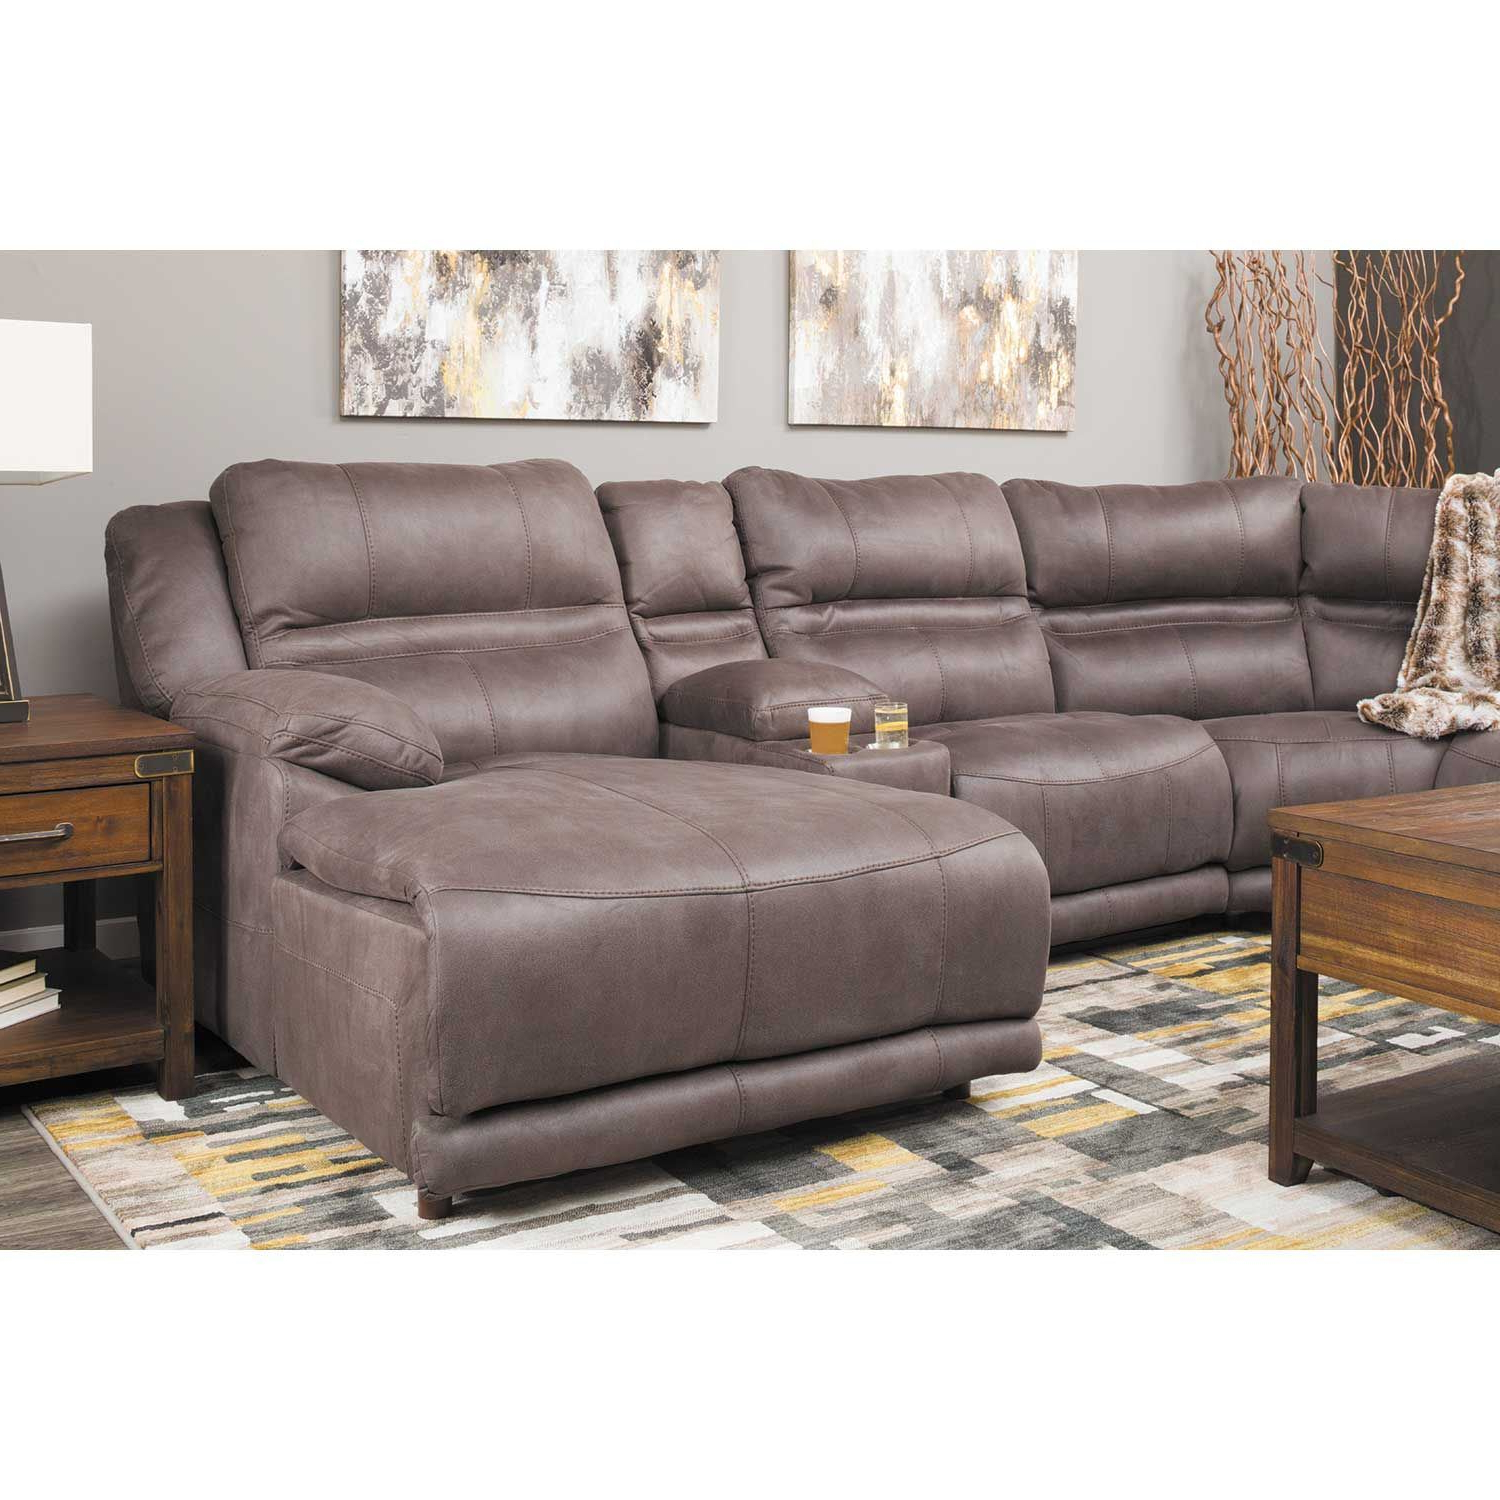 Most Popular Jackson 6 Piece Power Reclining Sectionals Intended For Braxton 6 Piece Power Reclining Sectional With Adjustable Headrest (View 4 of 20)